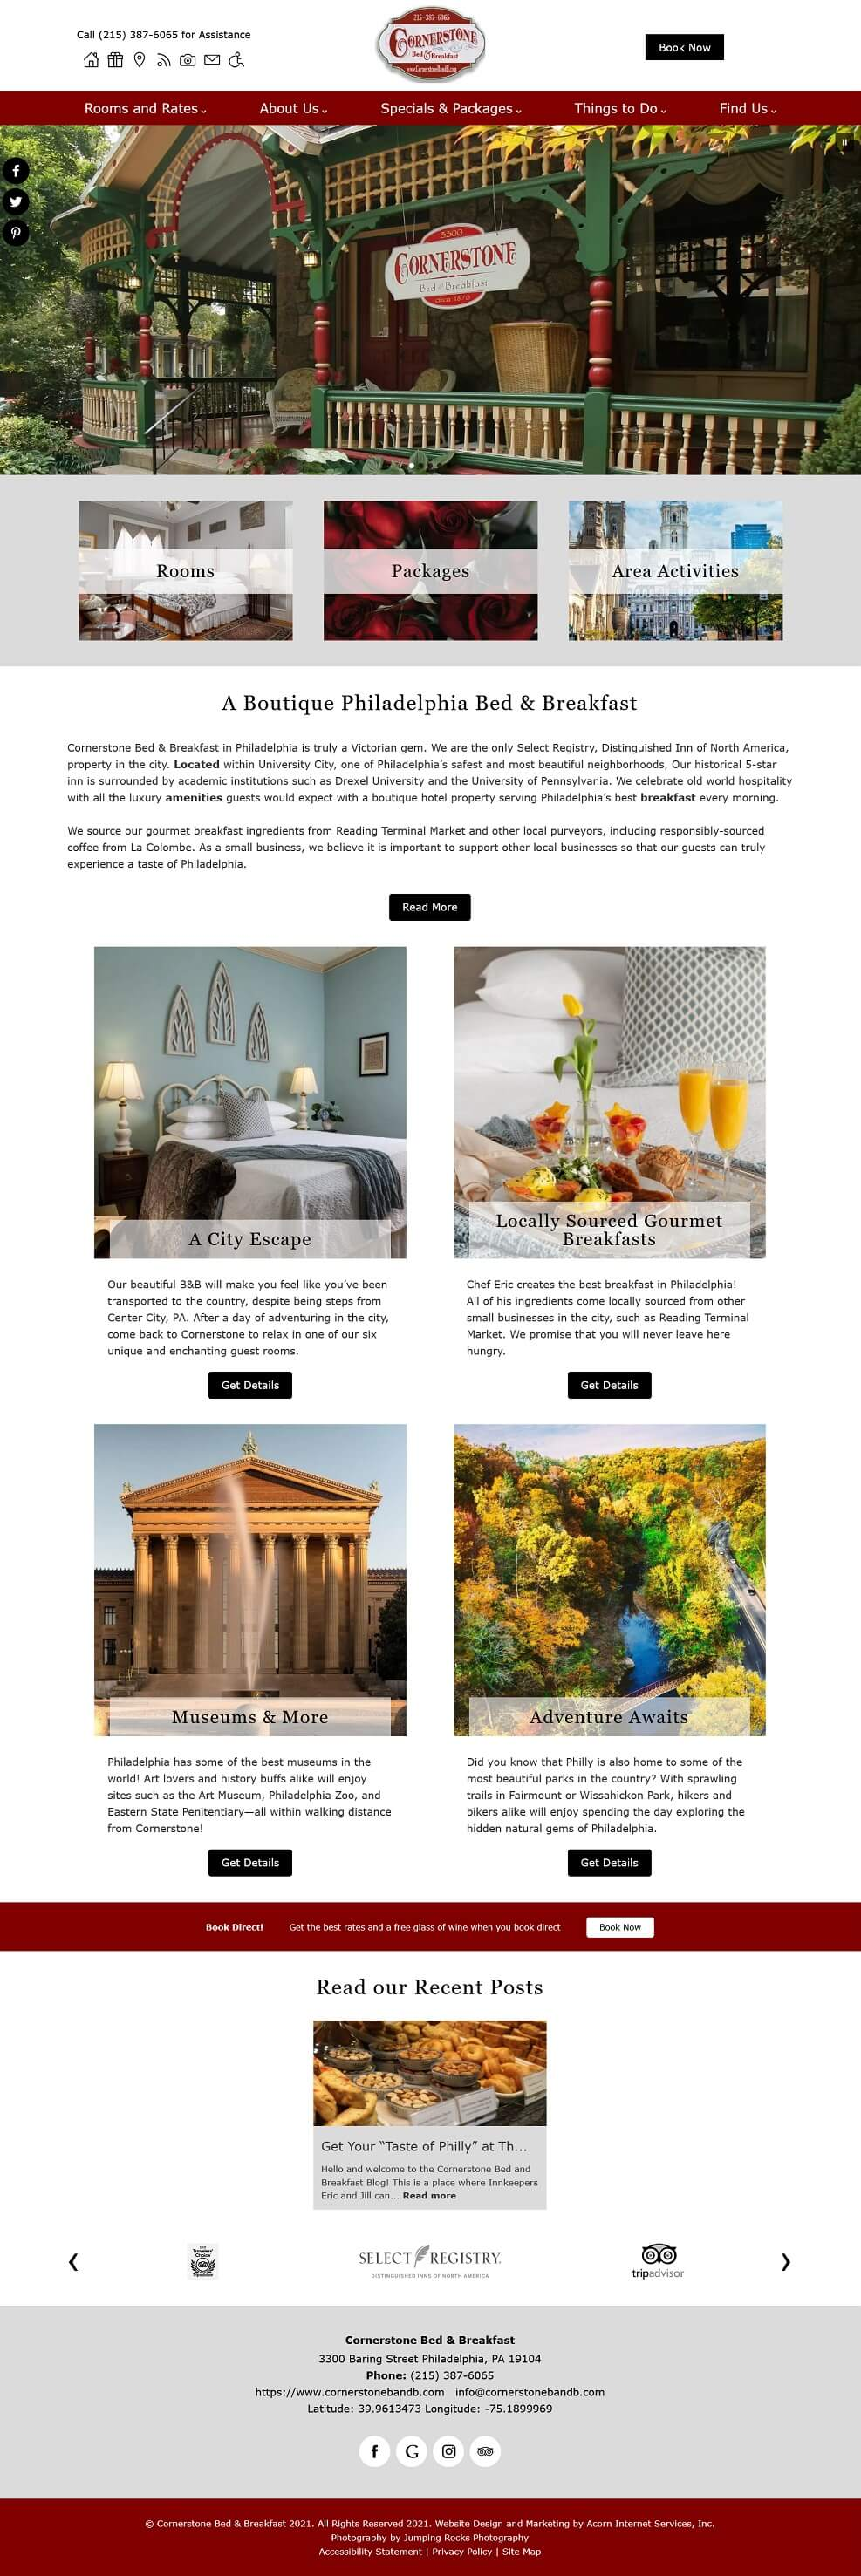 Cornerstone Bed and Breakfast home page